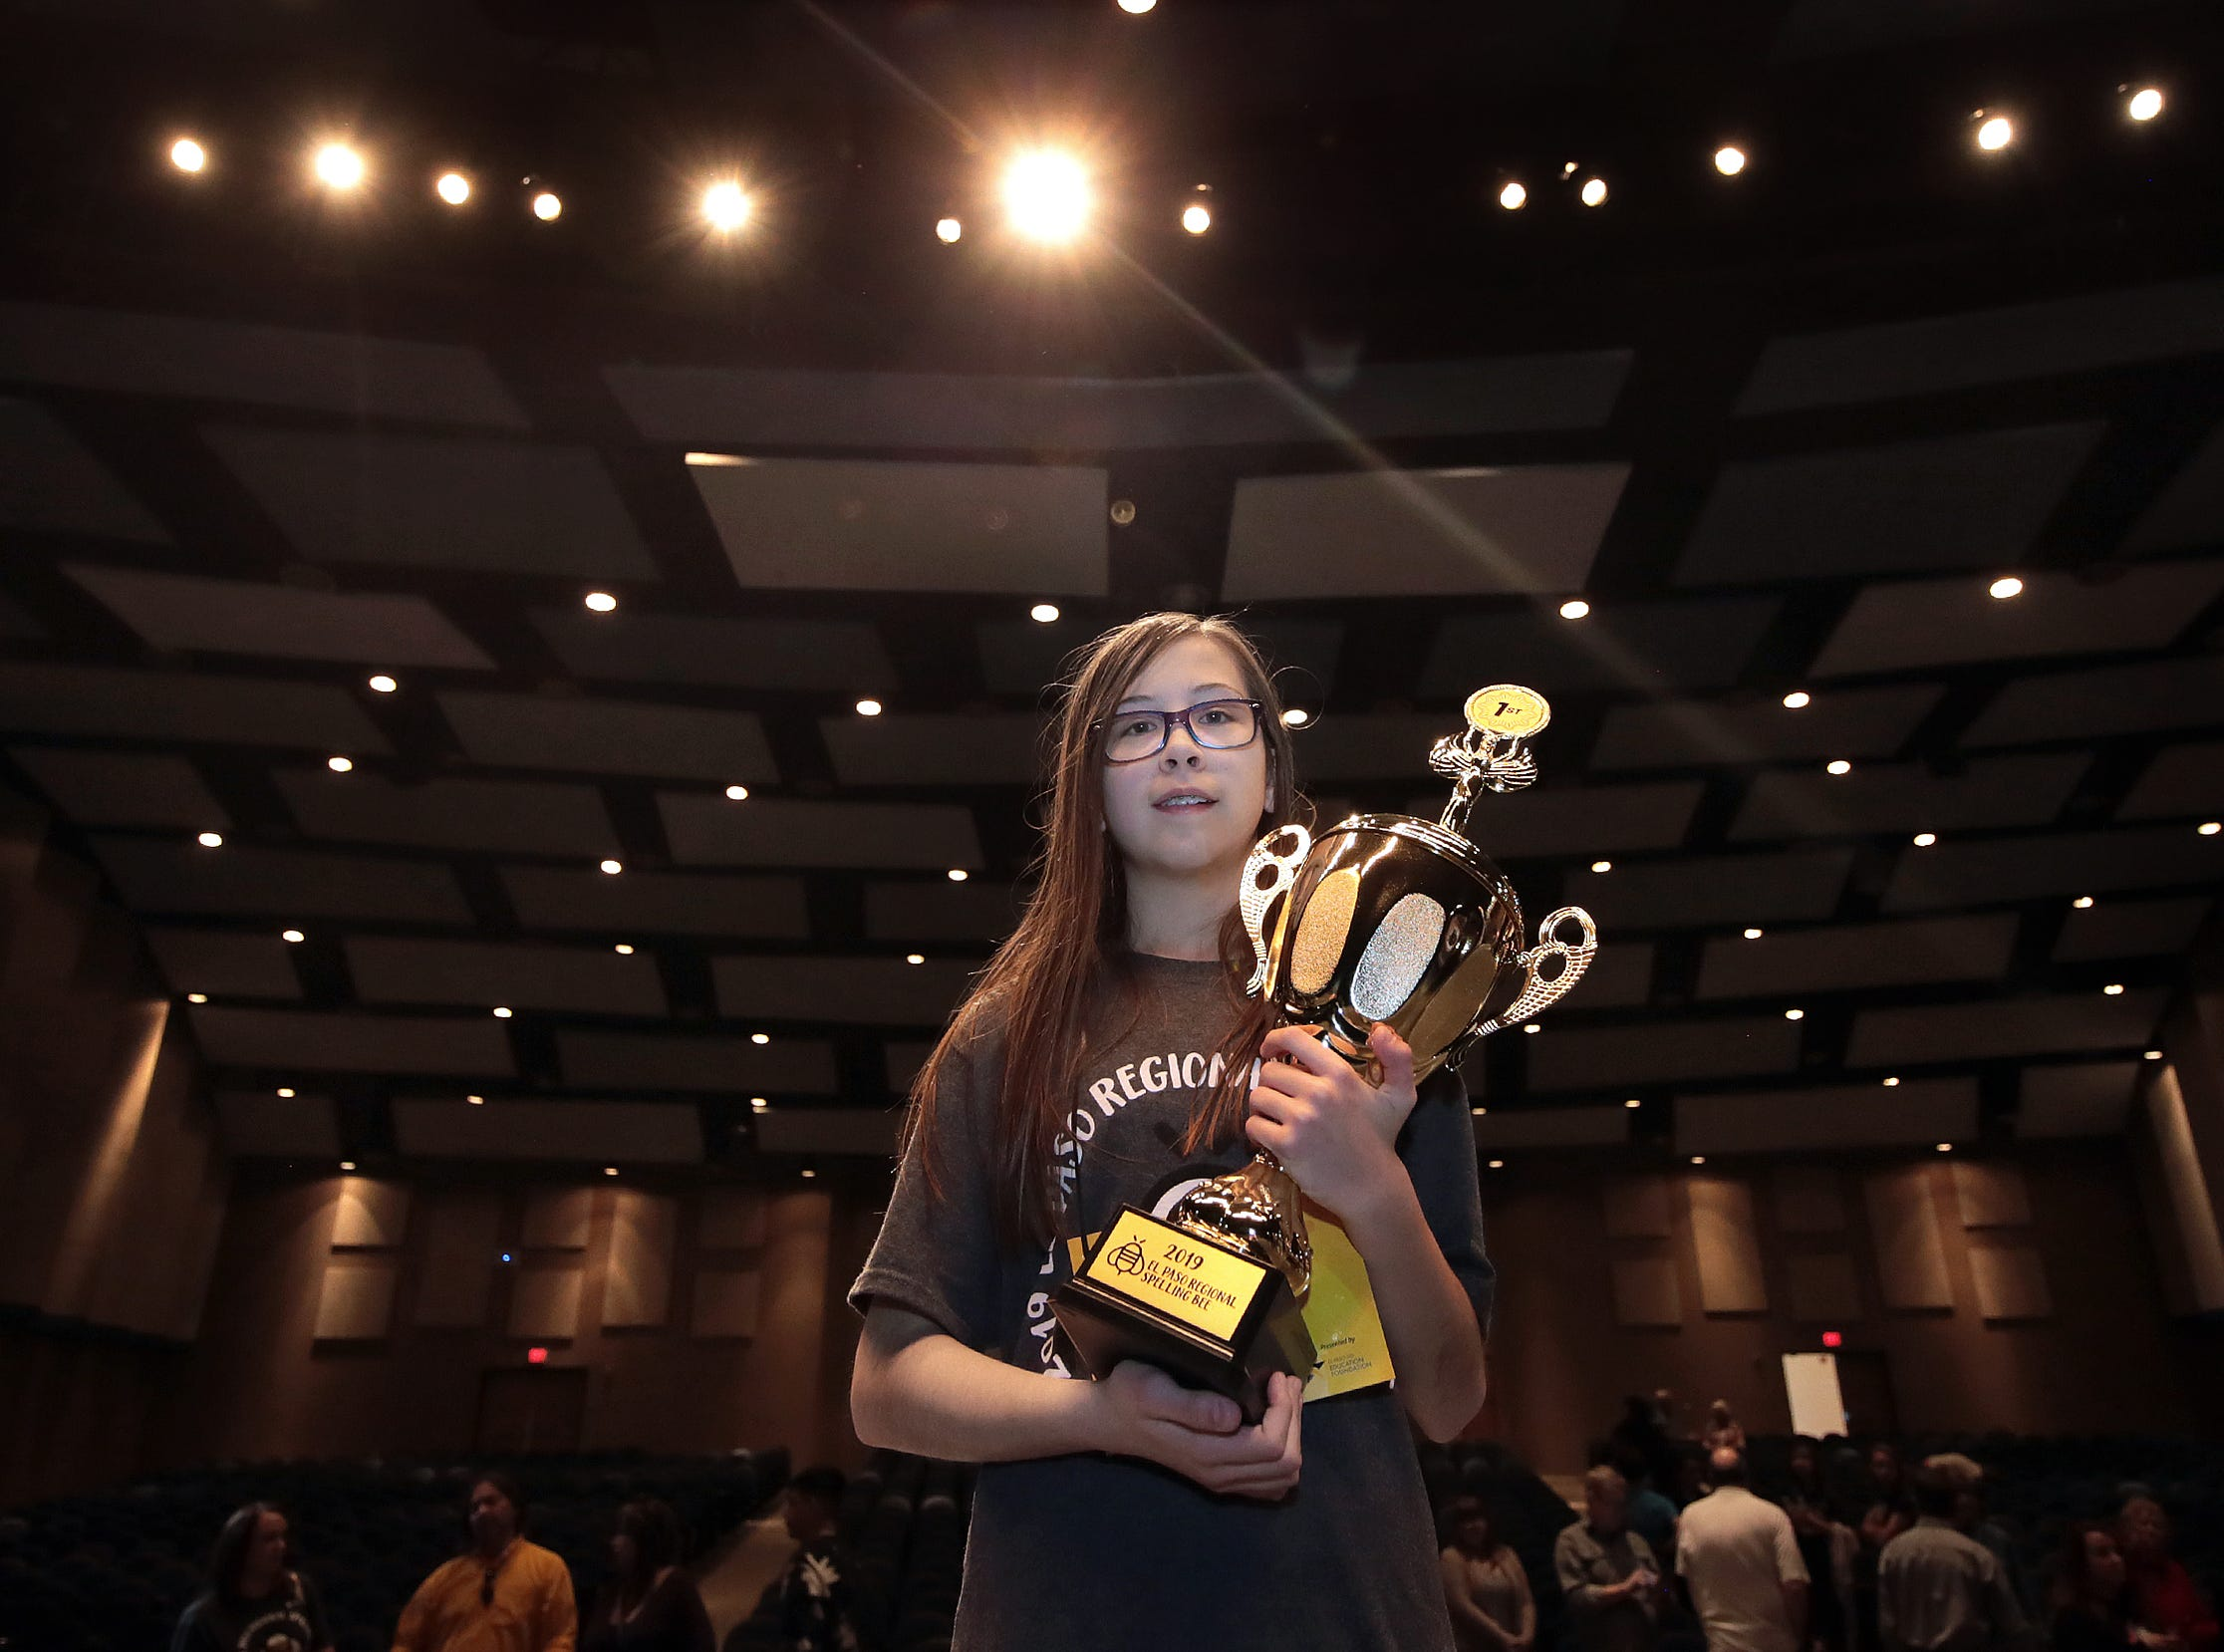 Lincoln Middle School's Penelope Moore, 13, won the 2019 El Paso Regional Spelling Bee earning a trip to compete at nationals in Washington D.C. 158 students from the region vied for the trophy.